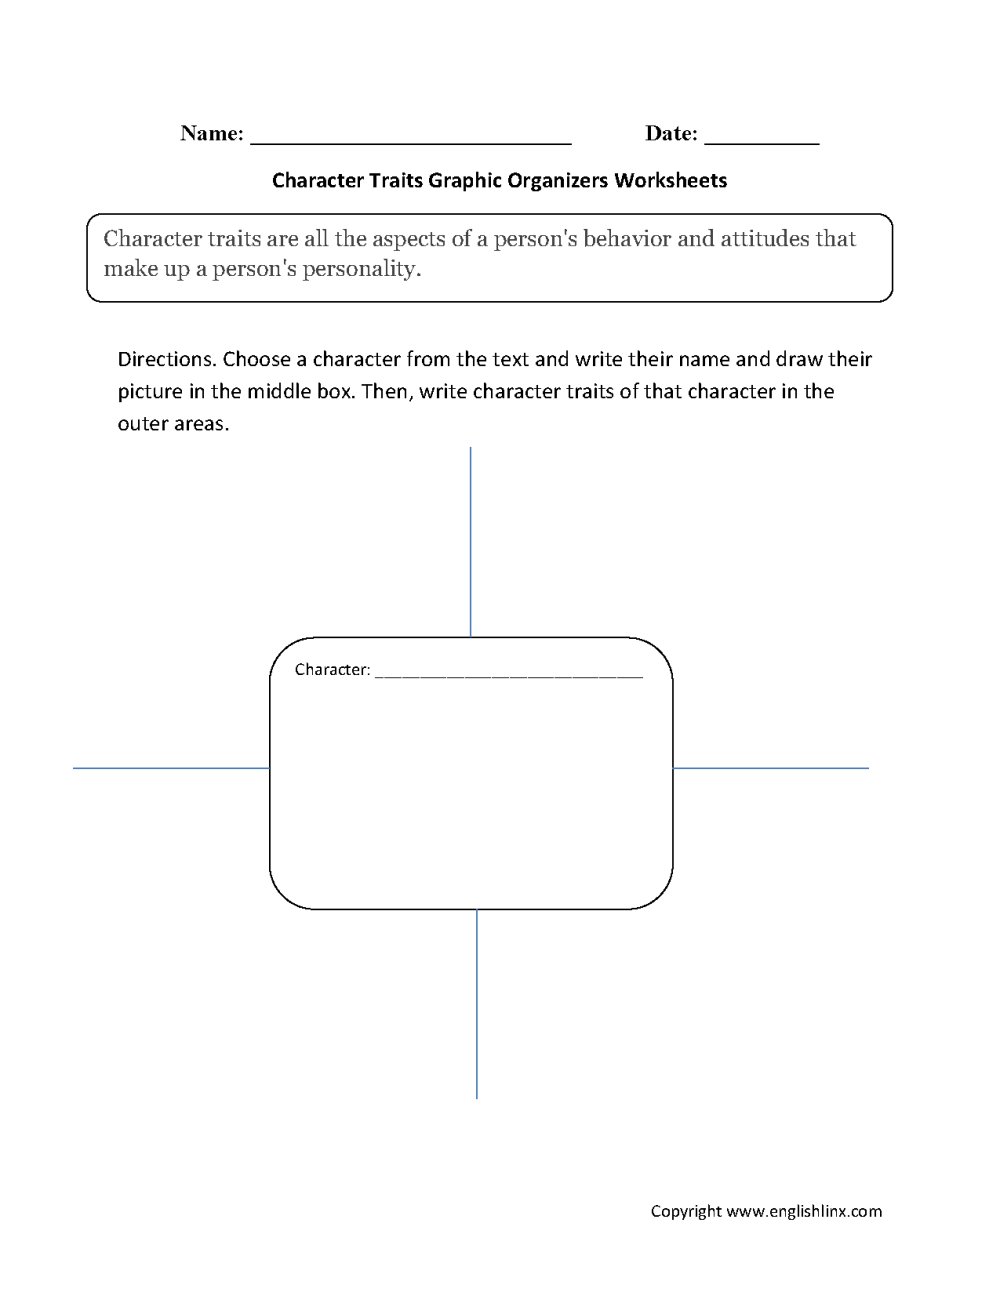 medium resolution of Graphic Organizers Worksheets   Character Traits Graphic Organizers  Worksheets